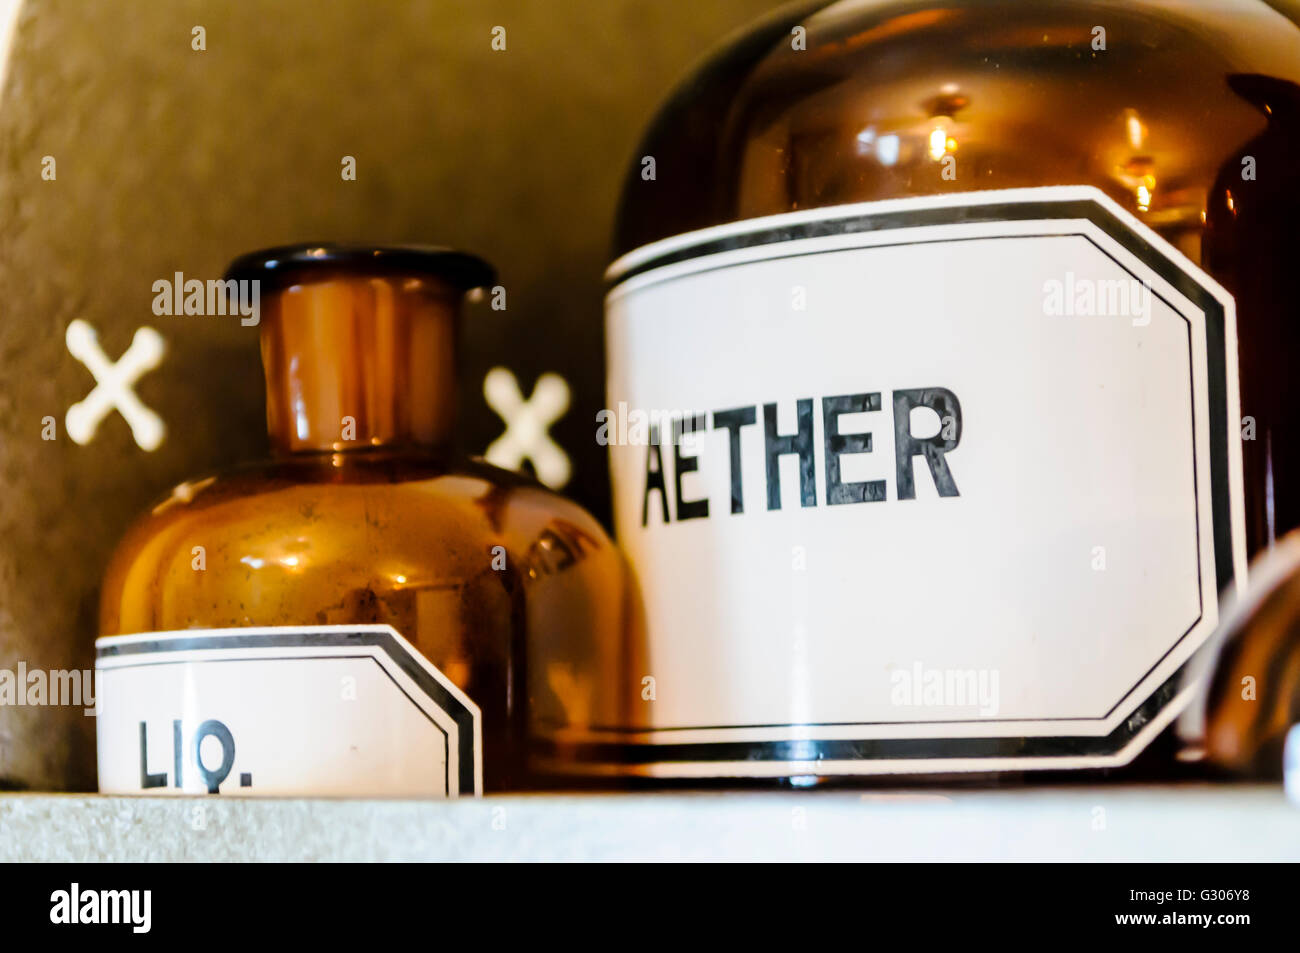 Bottles, including aether (ether) anaesthetic on shelves within a doctor's surgery from WW1. - Stock Image